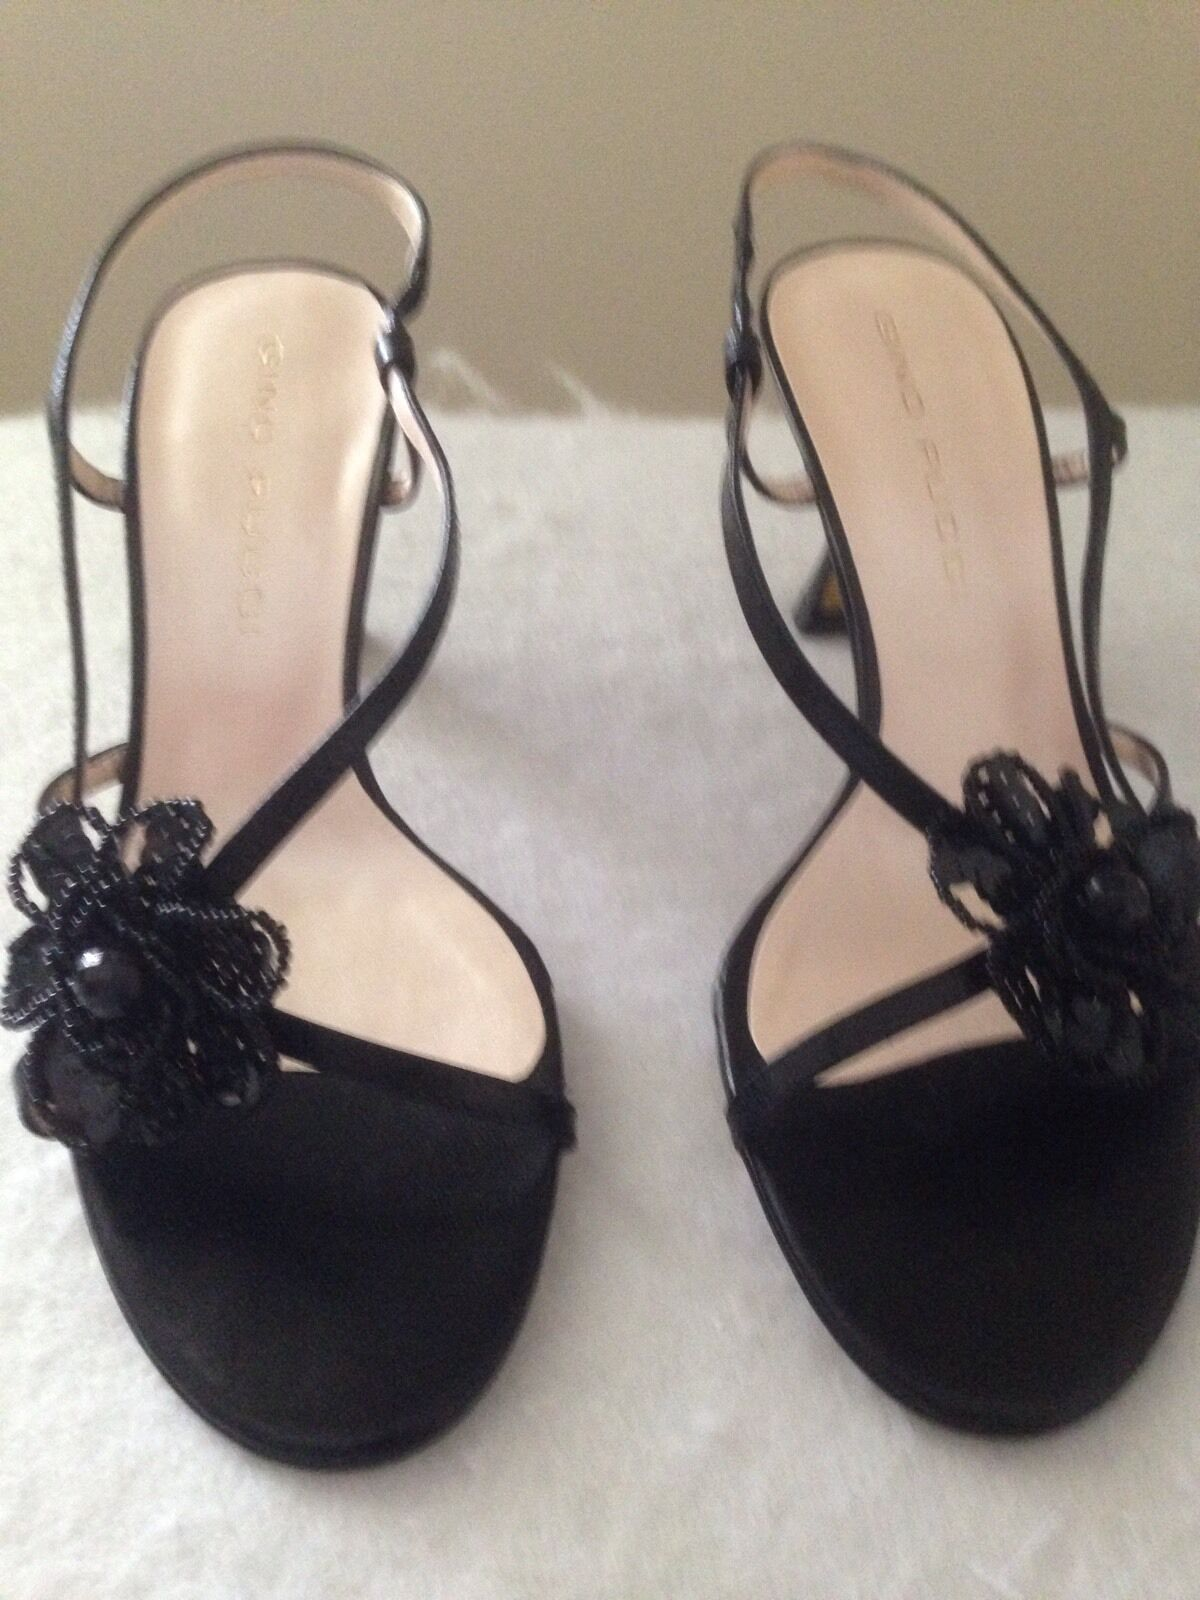 Gino Pucci  - BNWT - Roco Black Detailed Shoes - Size 7 RRP 99.95